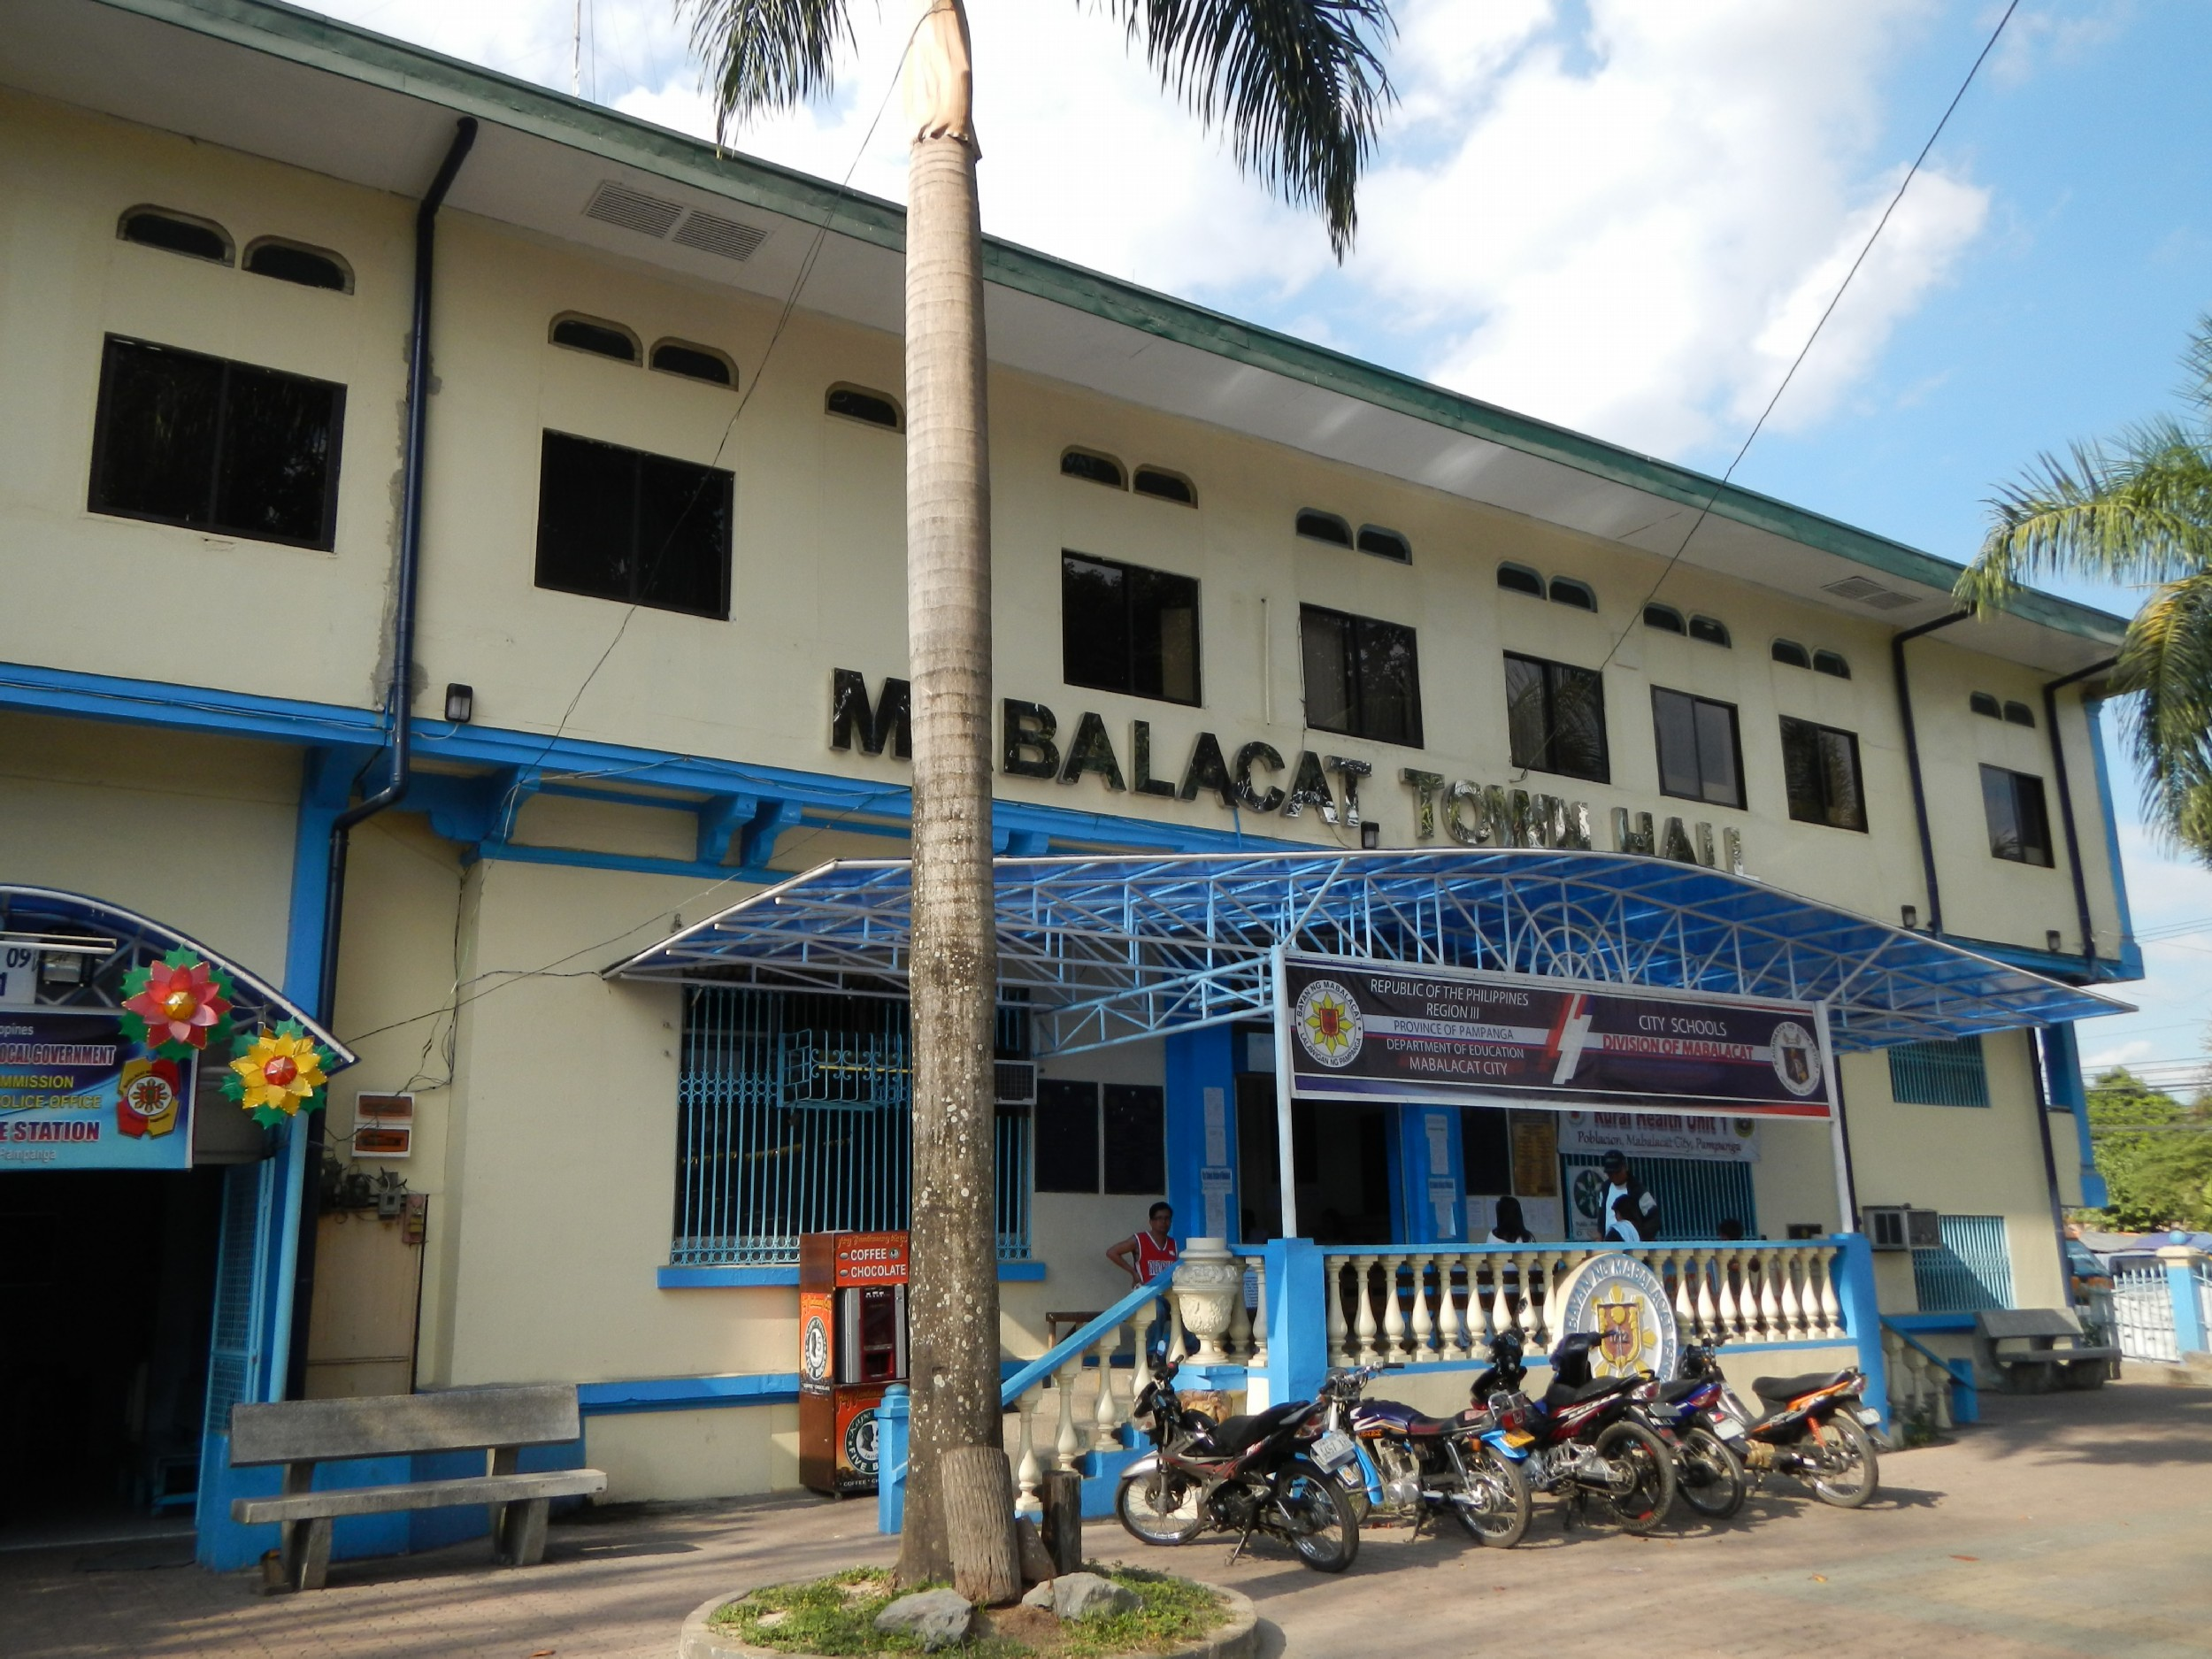 mabalacat pampanga essay As a result, the researchers should be able to assess the level of involvement of the local residents in the tourism activities in marcos village, mabalacat, pampanga the research study applied the ipo approach or the input, process and output approach.